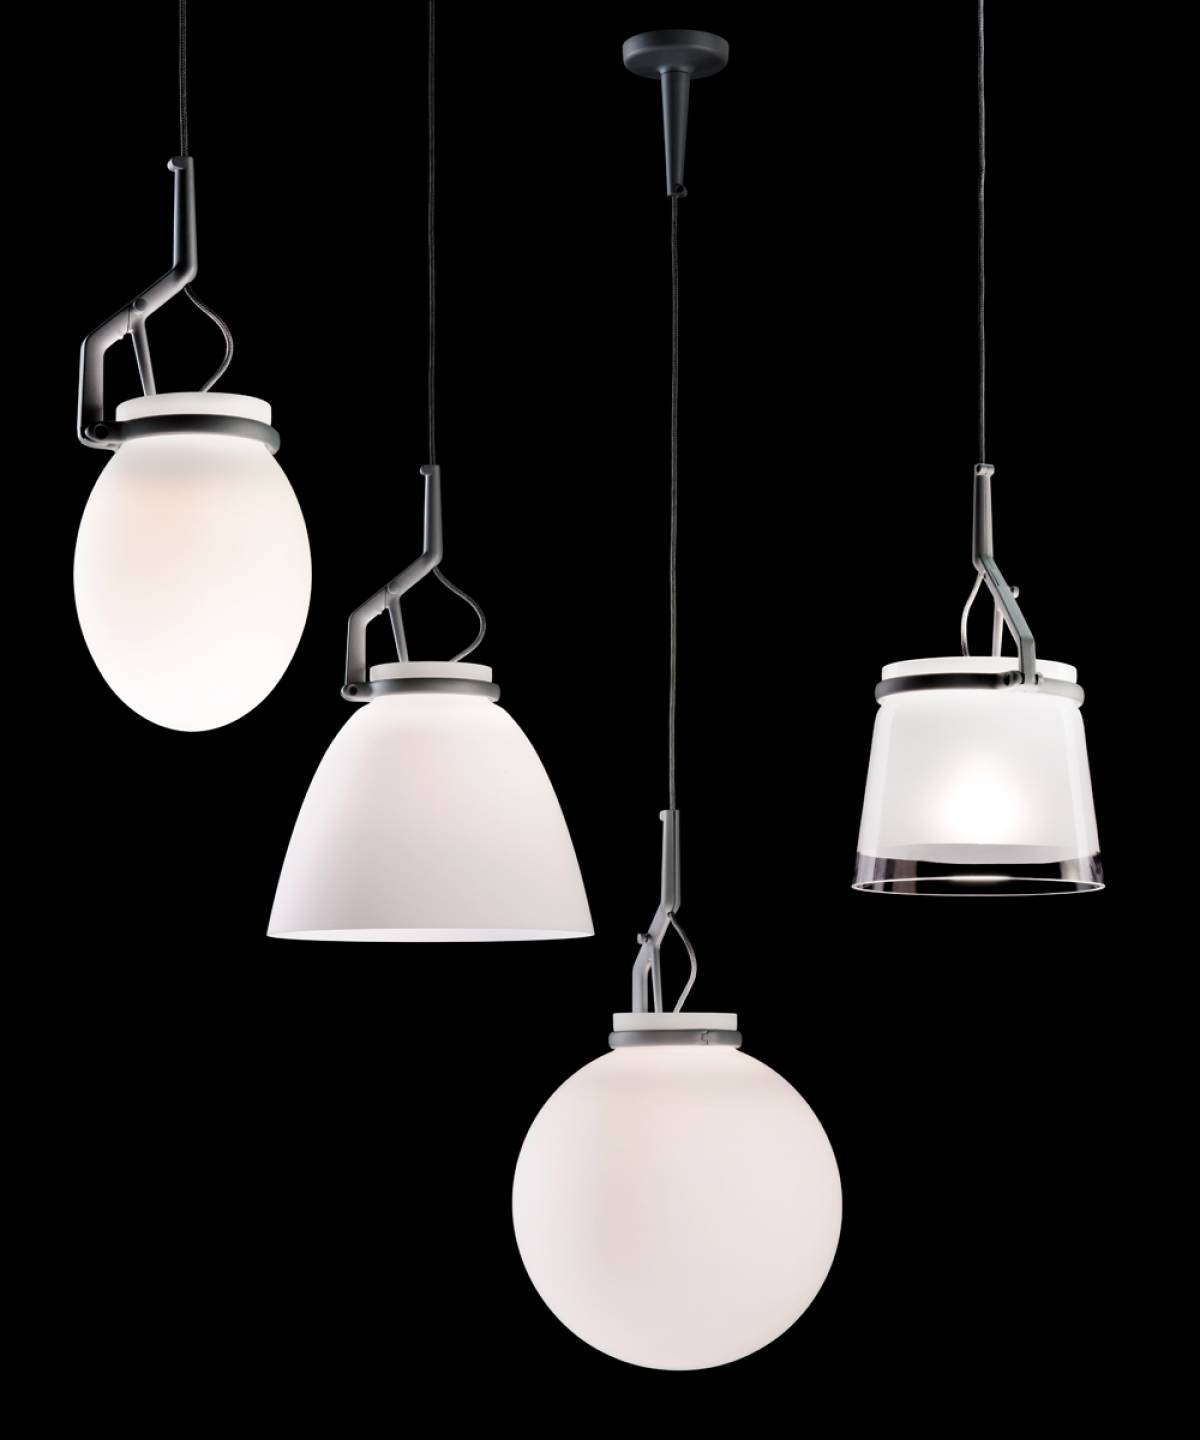 2 GlassGlass suspension lamp Luceplan